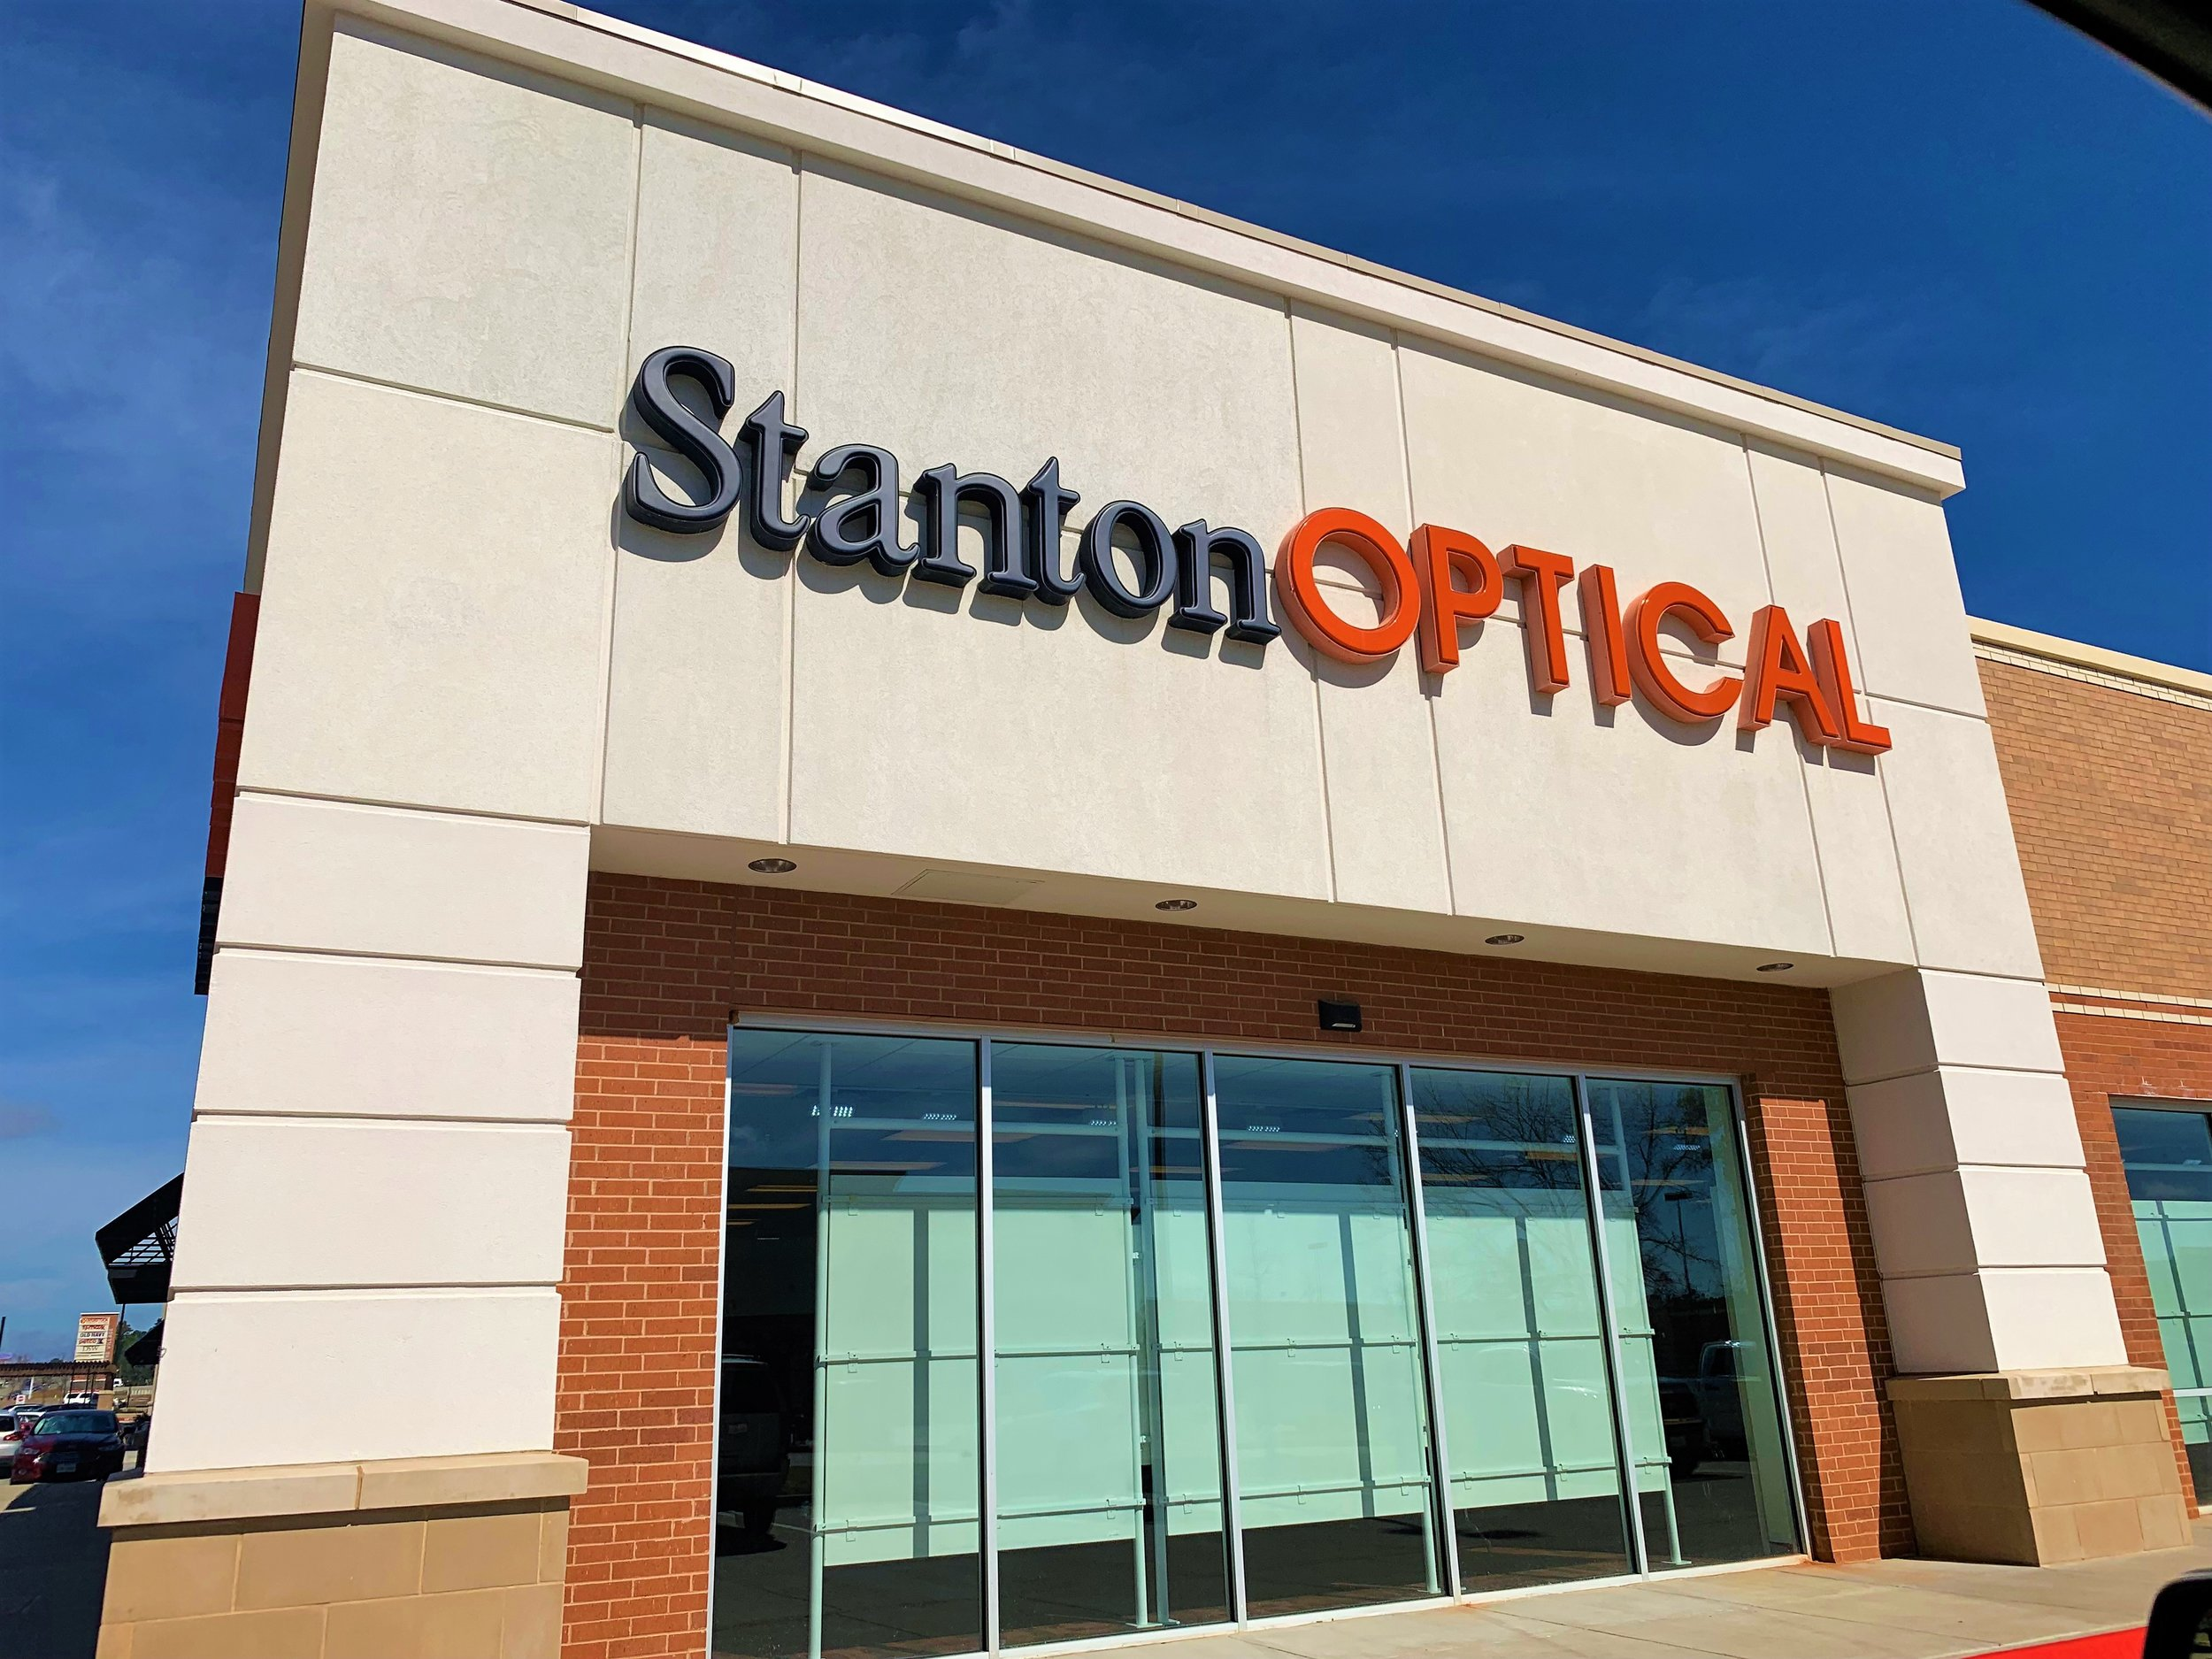 Stanton Optical.jpg